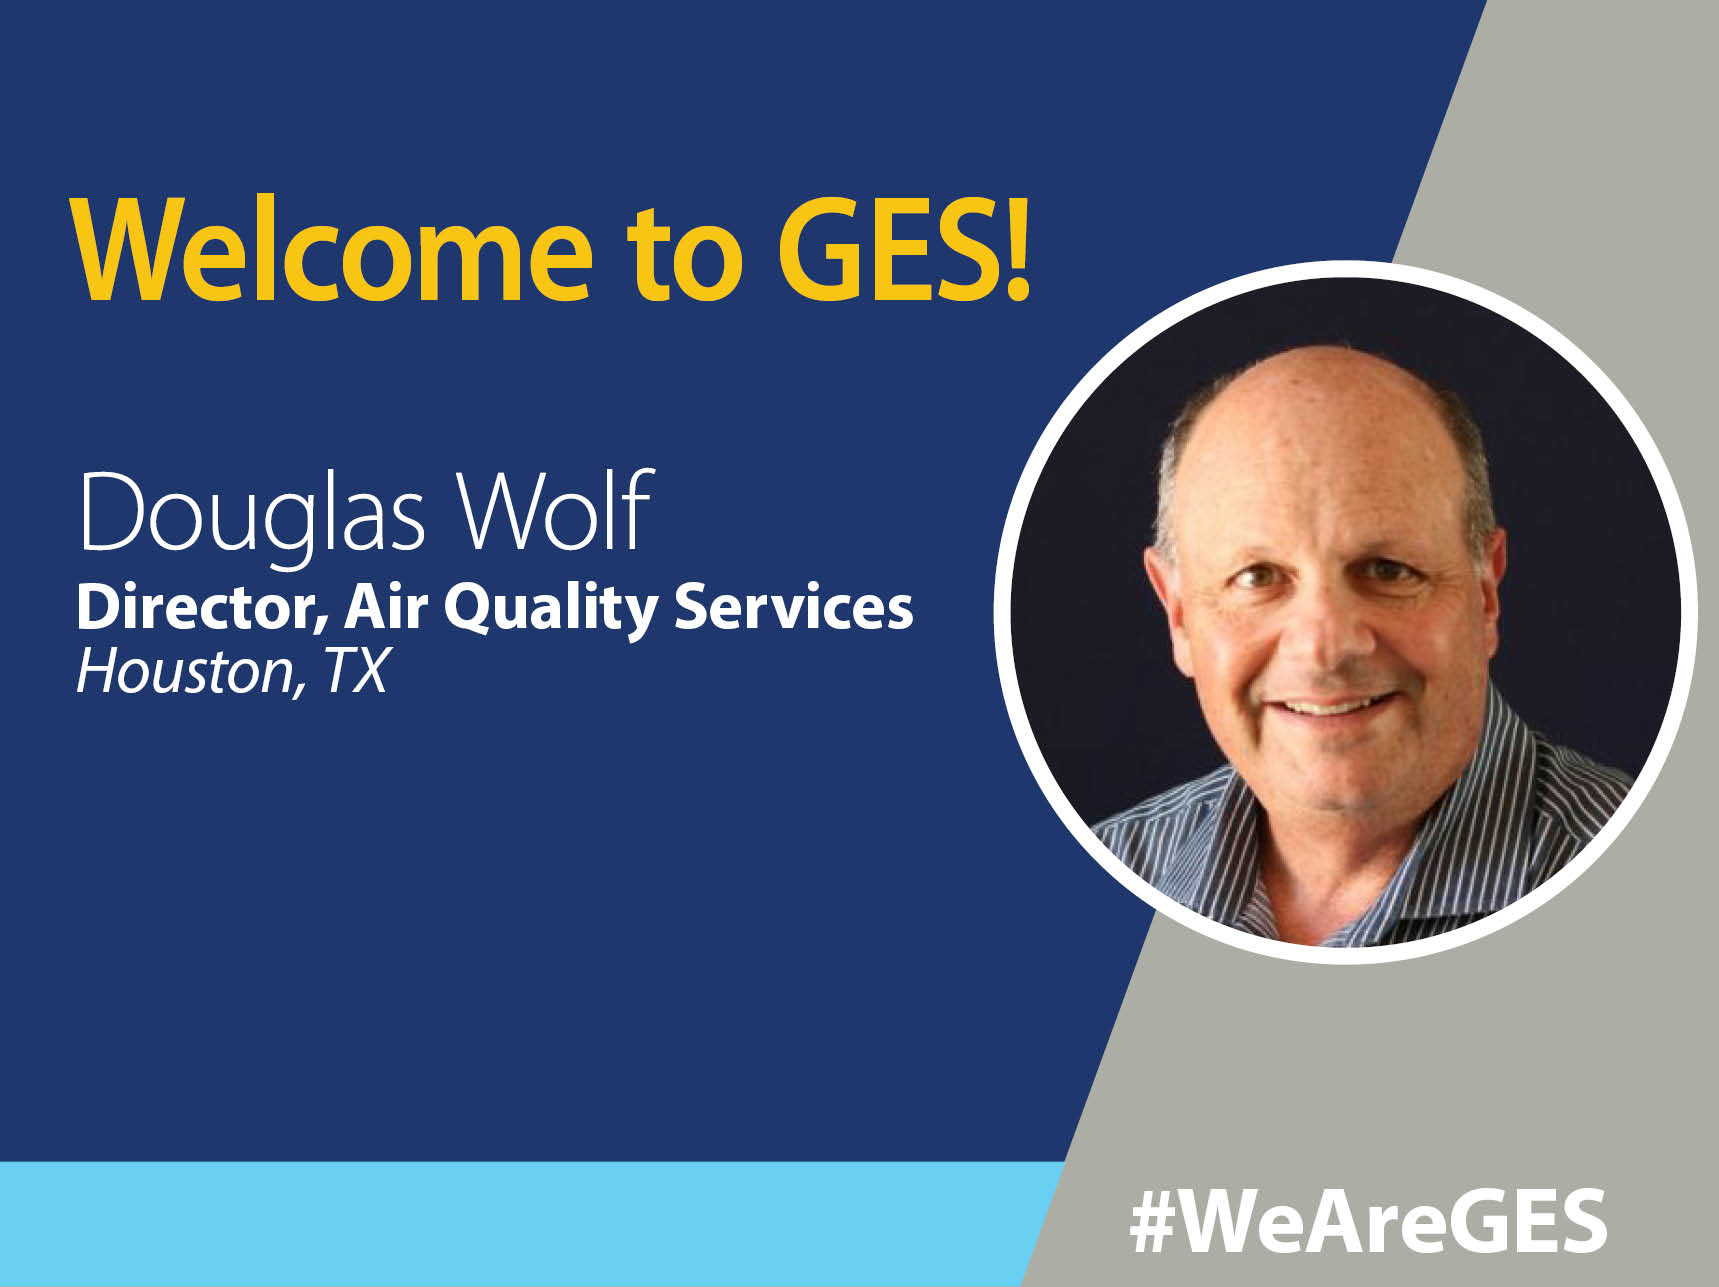 Doug Wolf, Air Quality Specialist Joins GES